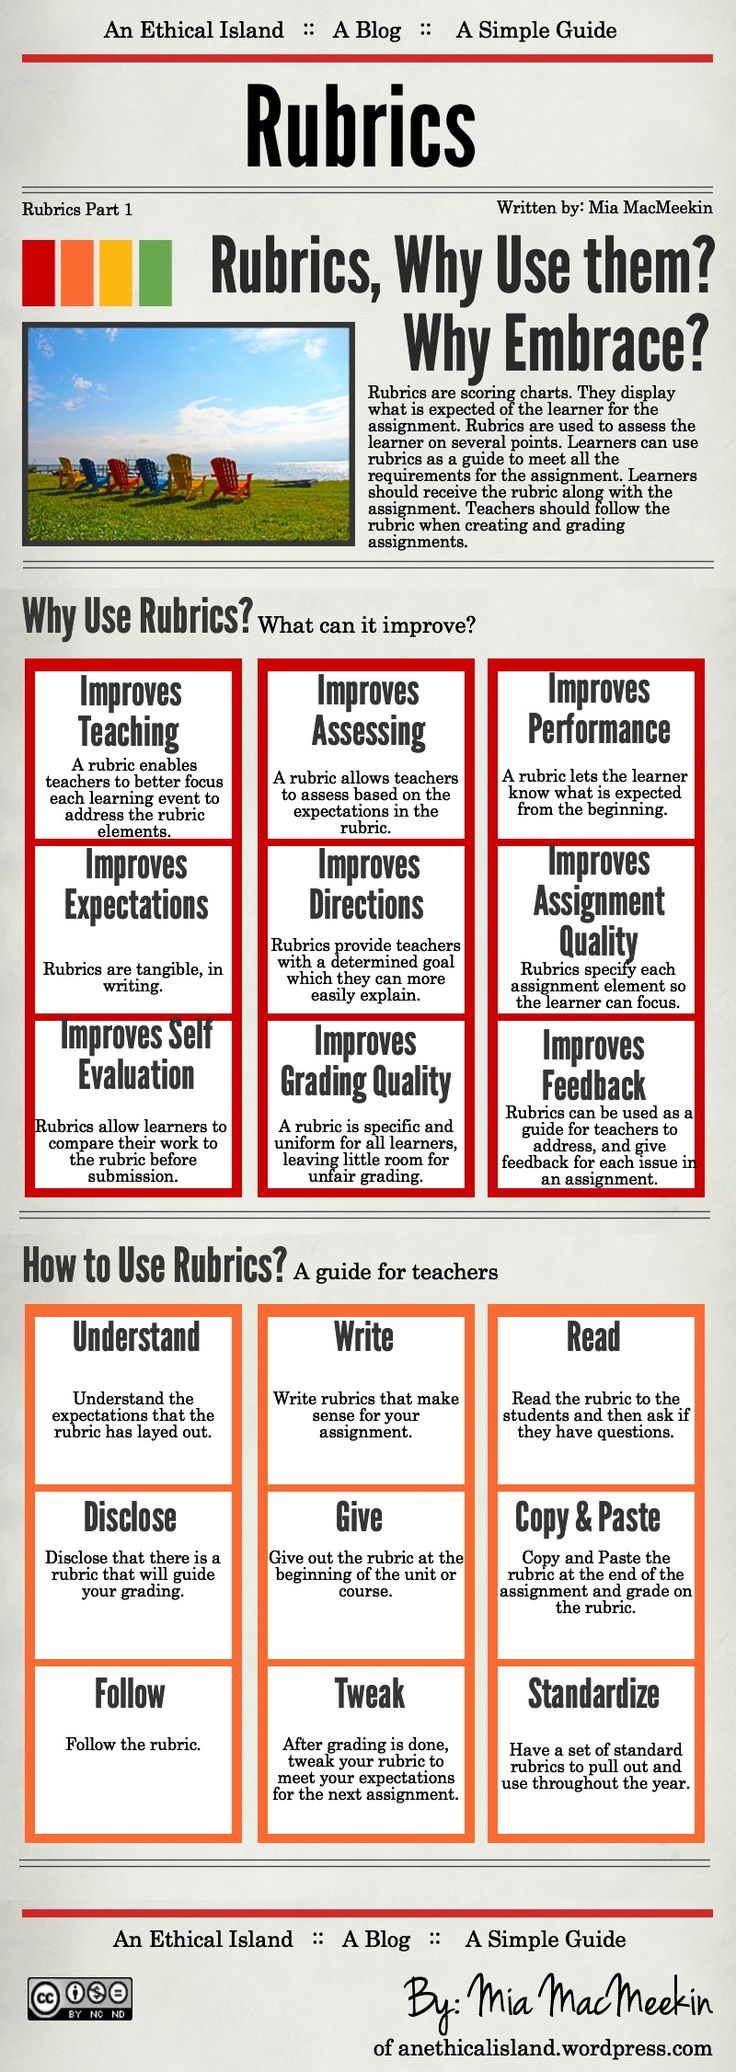 Why Teachers Should Use Rubrics Infographic - http://elearninginfographics.com/why-teachers-should-use-rubrics-infographic/